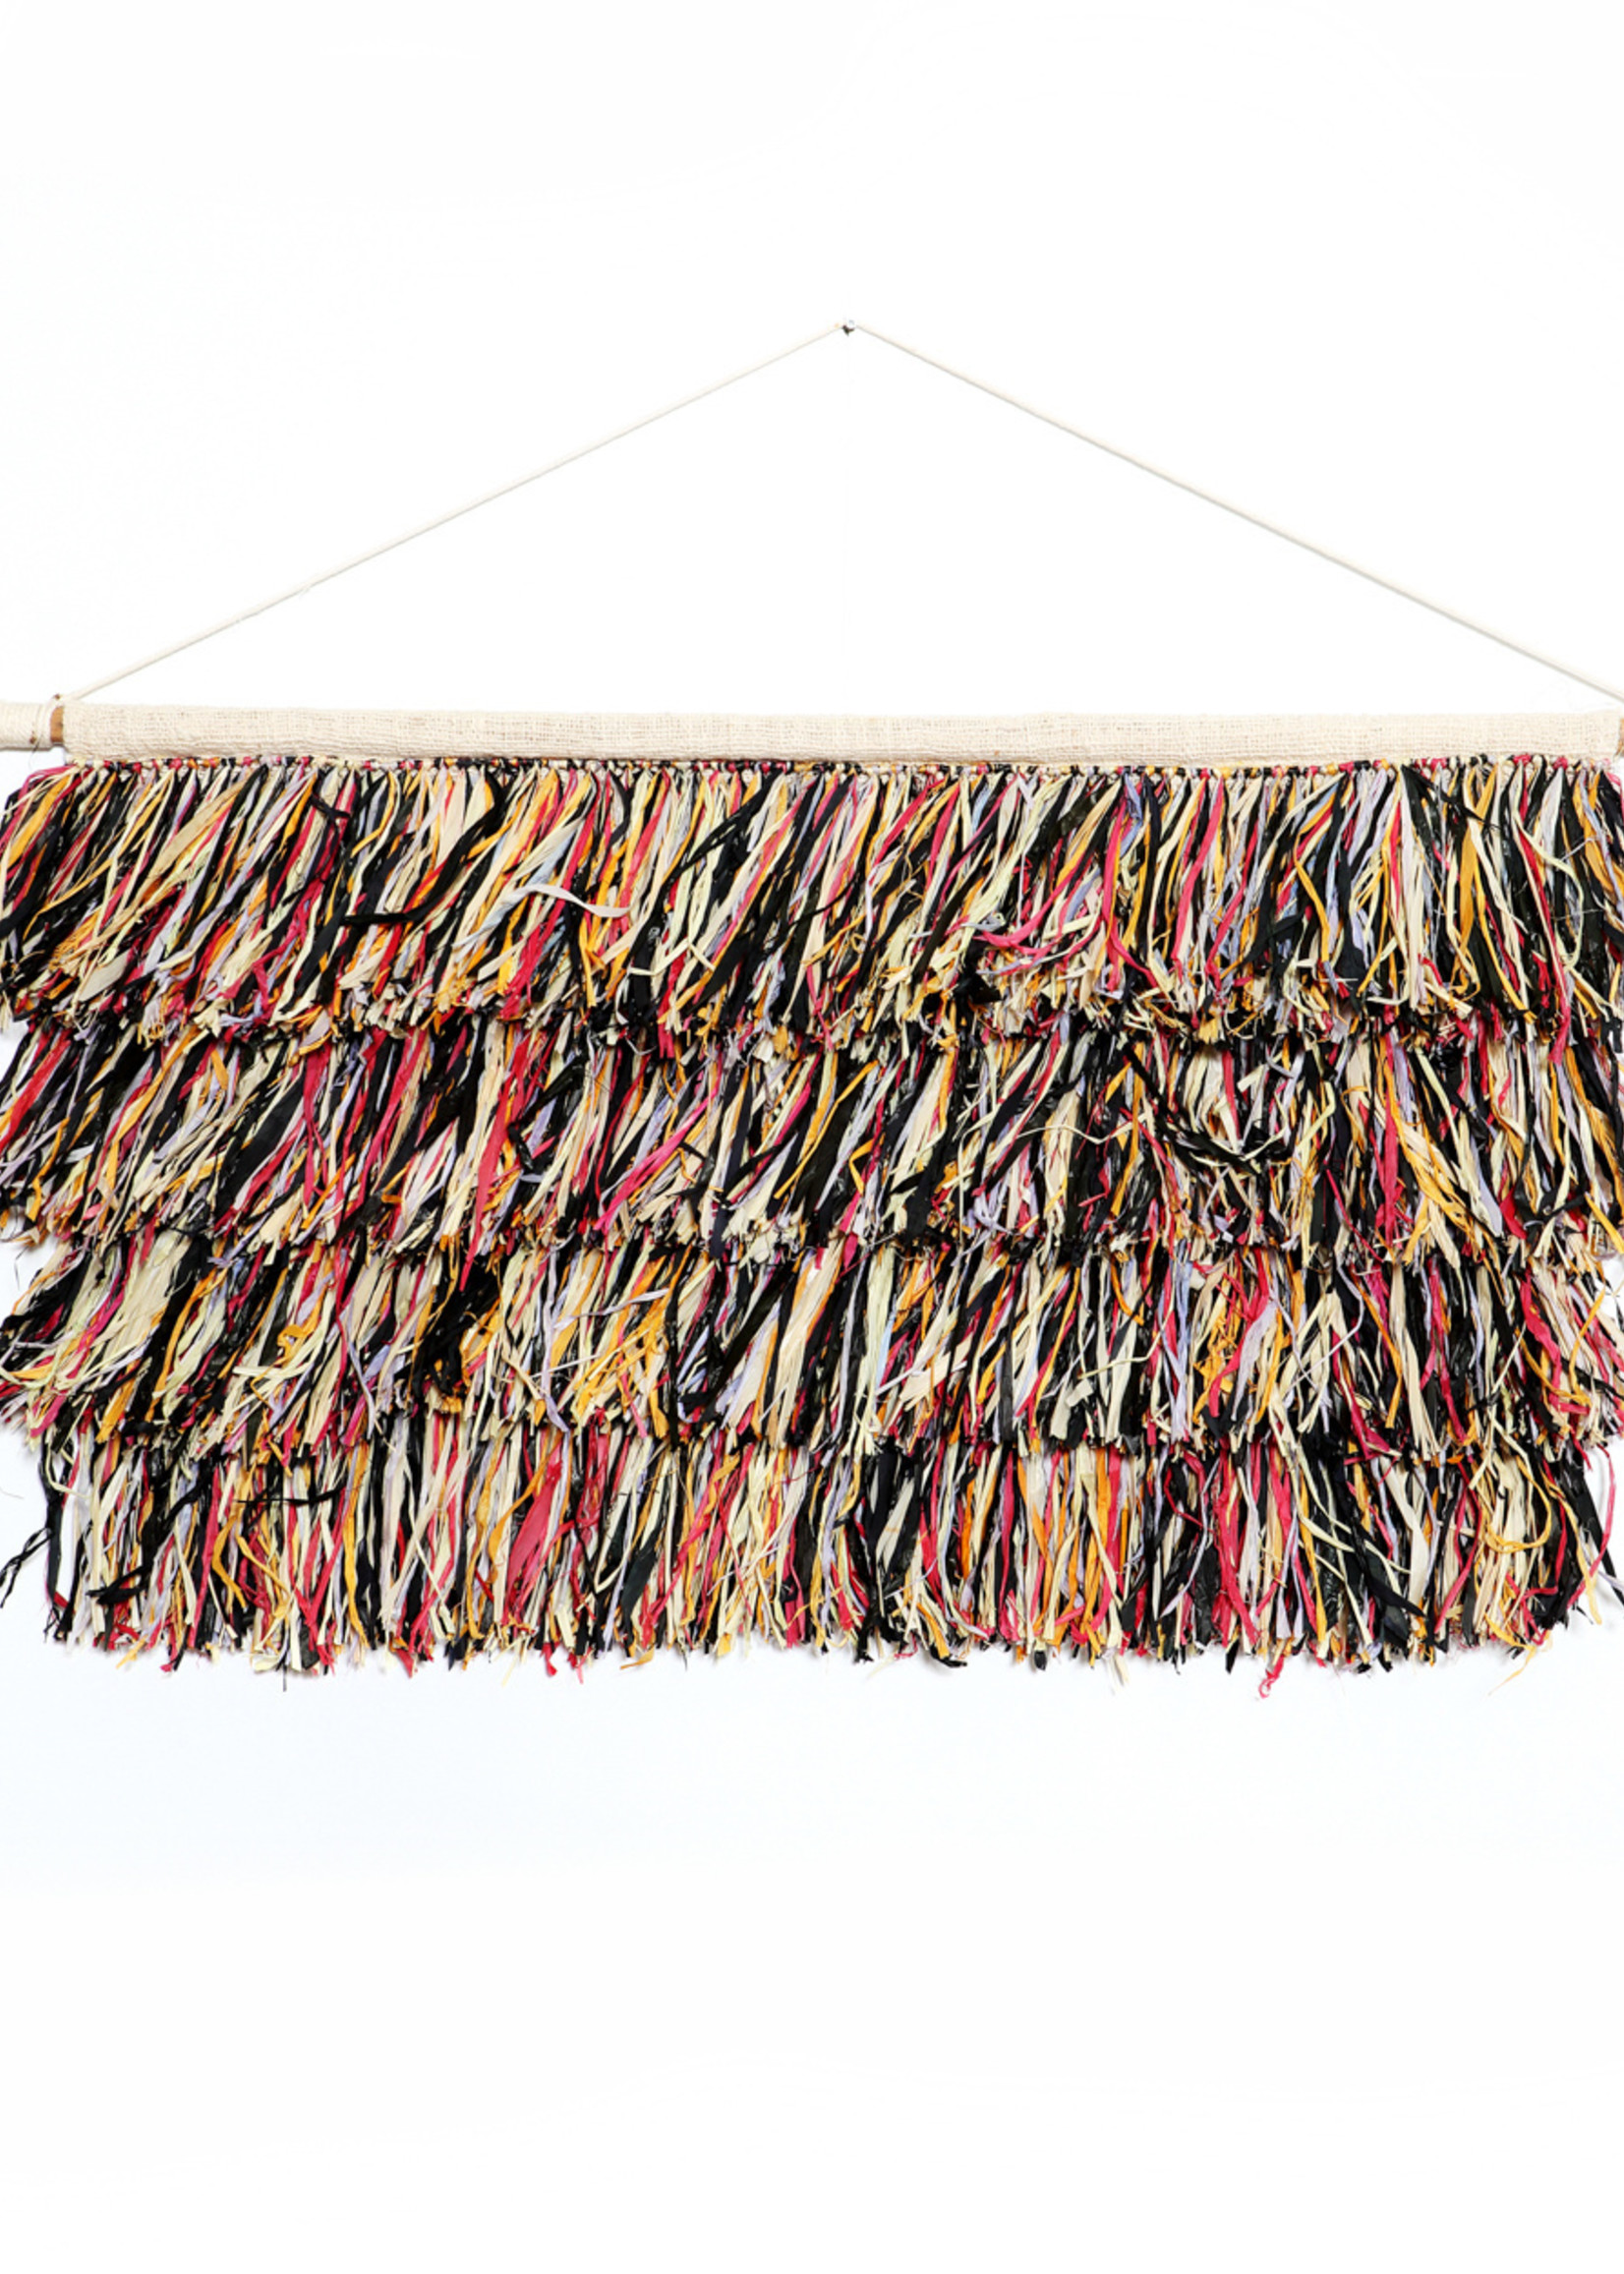 The Friday Fringes - Mixed Colors